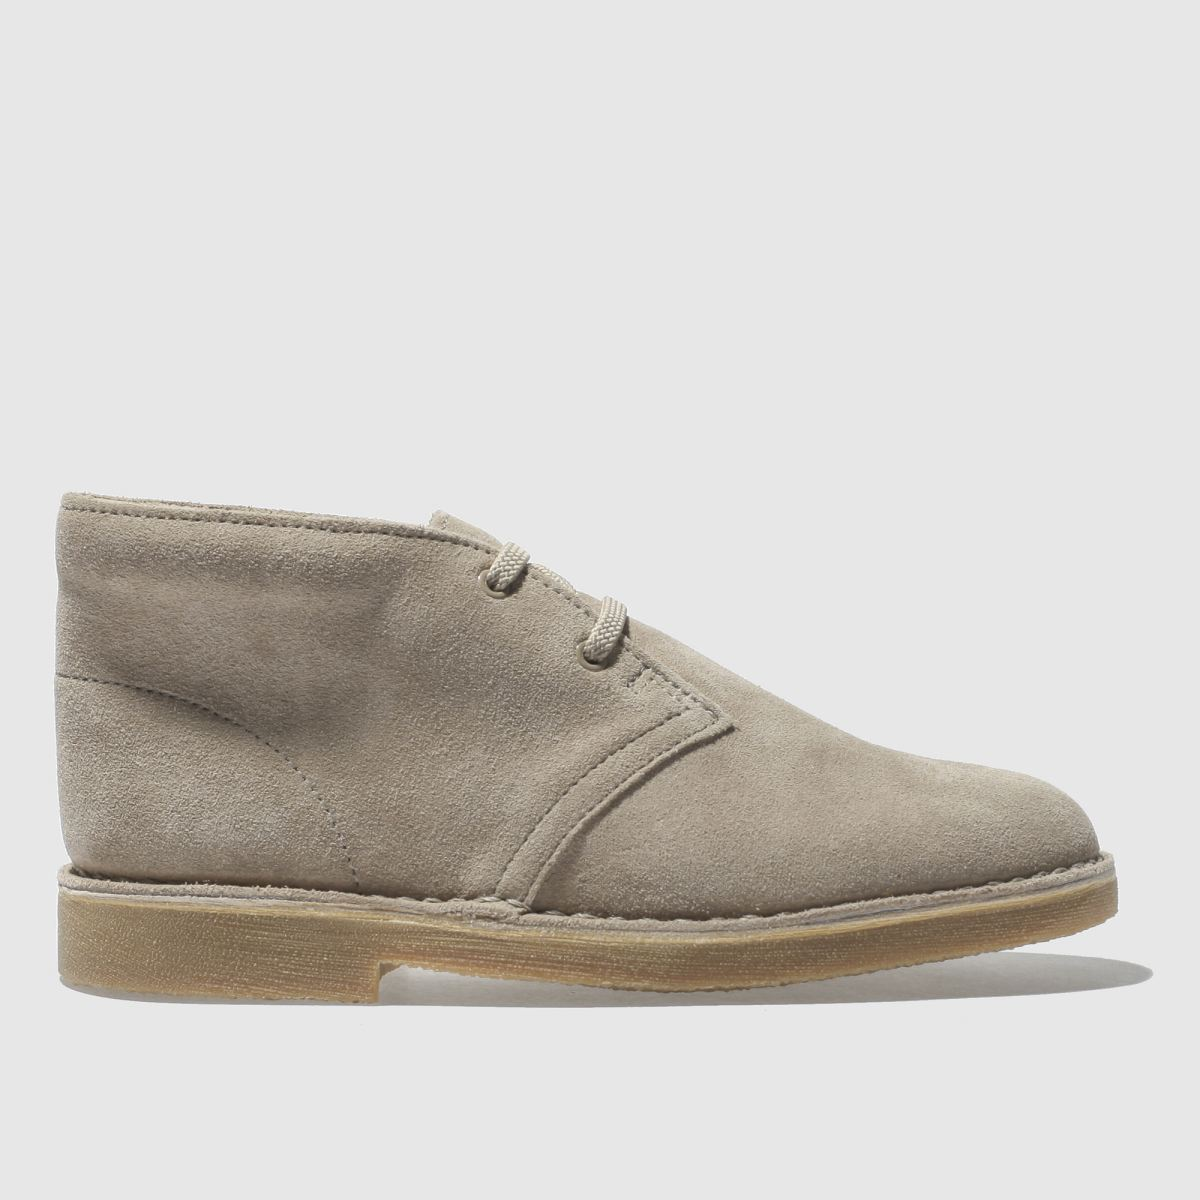 Clarks Originals Stone Desert Boot Unisex Youth Youth